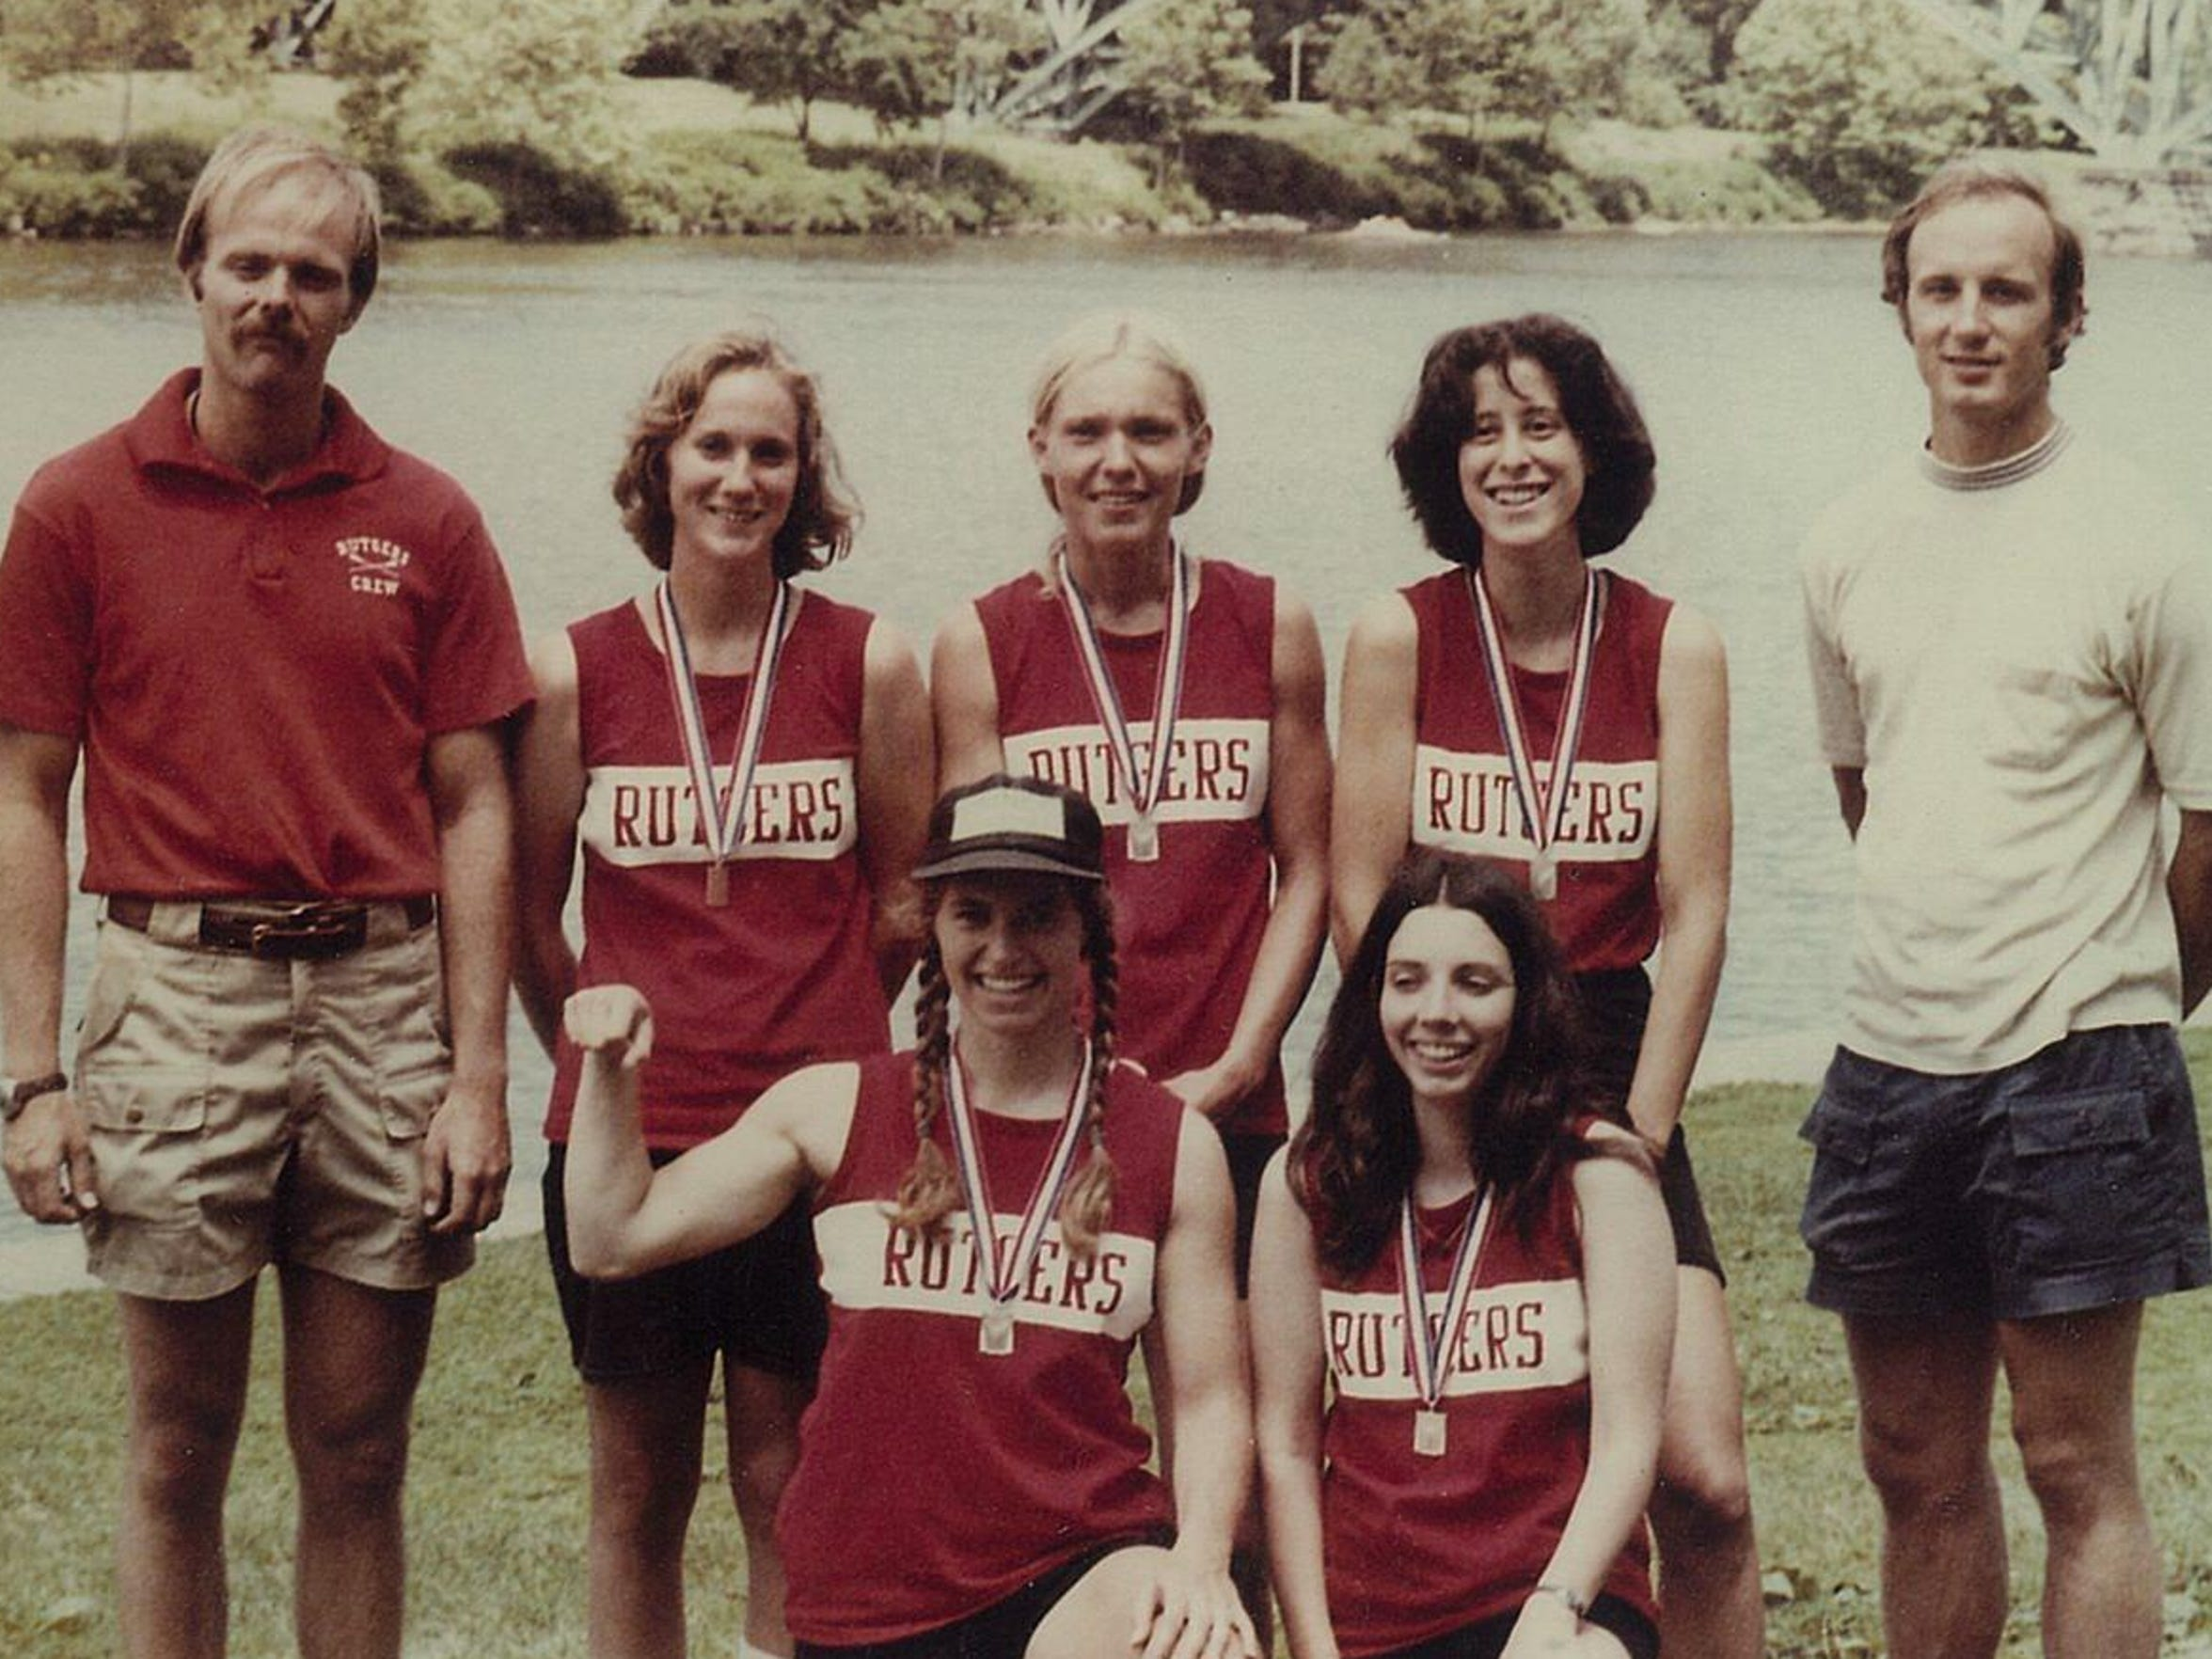 The 1977 Rutgers women's rowing poses at the Lightweight